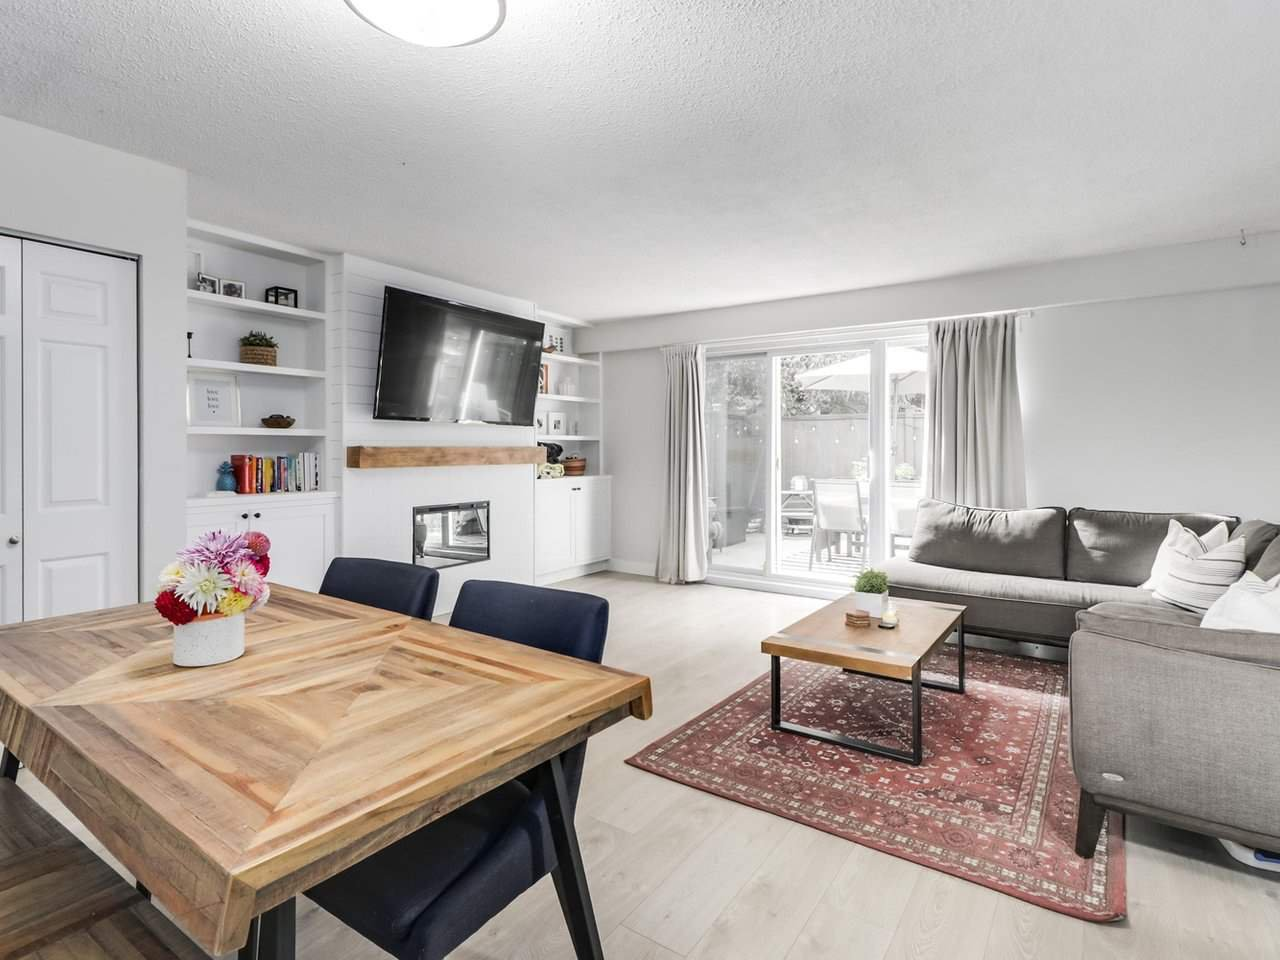 """Main Photo: 21 4949 57 Street in Delta: Hawthorne Townhouse for sale in """"OASIS"""" (Ladner)  : MLS®# R2505402"""